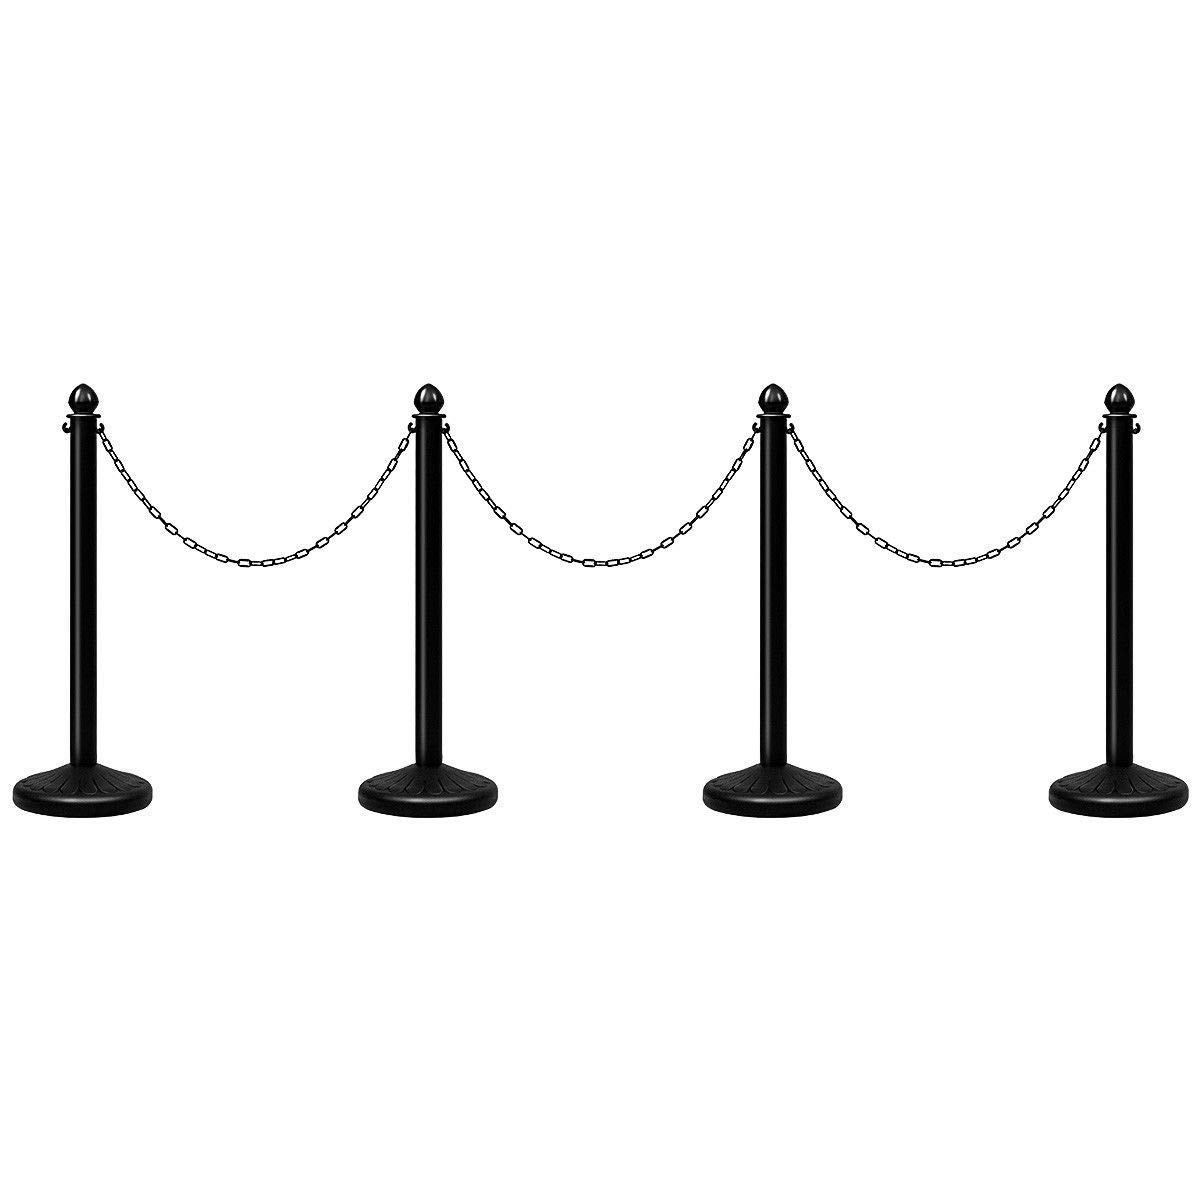 Goplus 4pcs Plastic Stanchion Set Crowd Control Stanchions Barriers Outdoor and Indoor Stanchions with 39.5'' Connect Chain, C-Hooks by Goplus